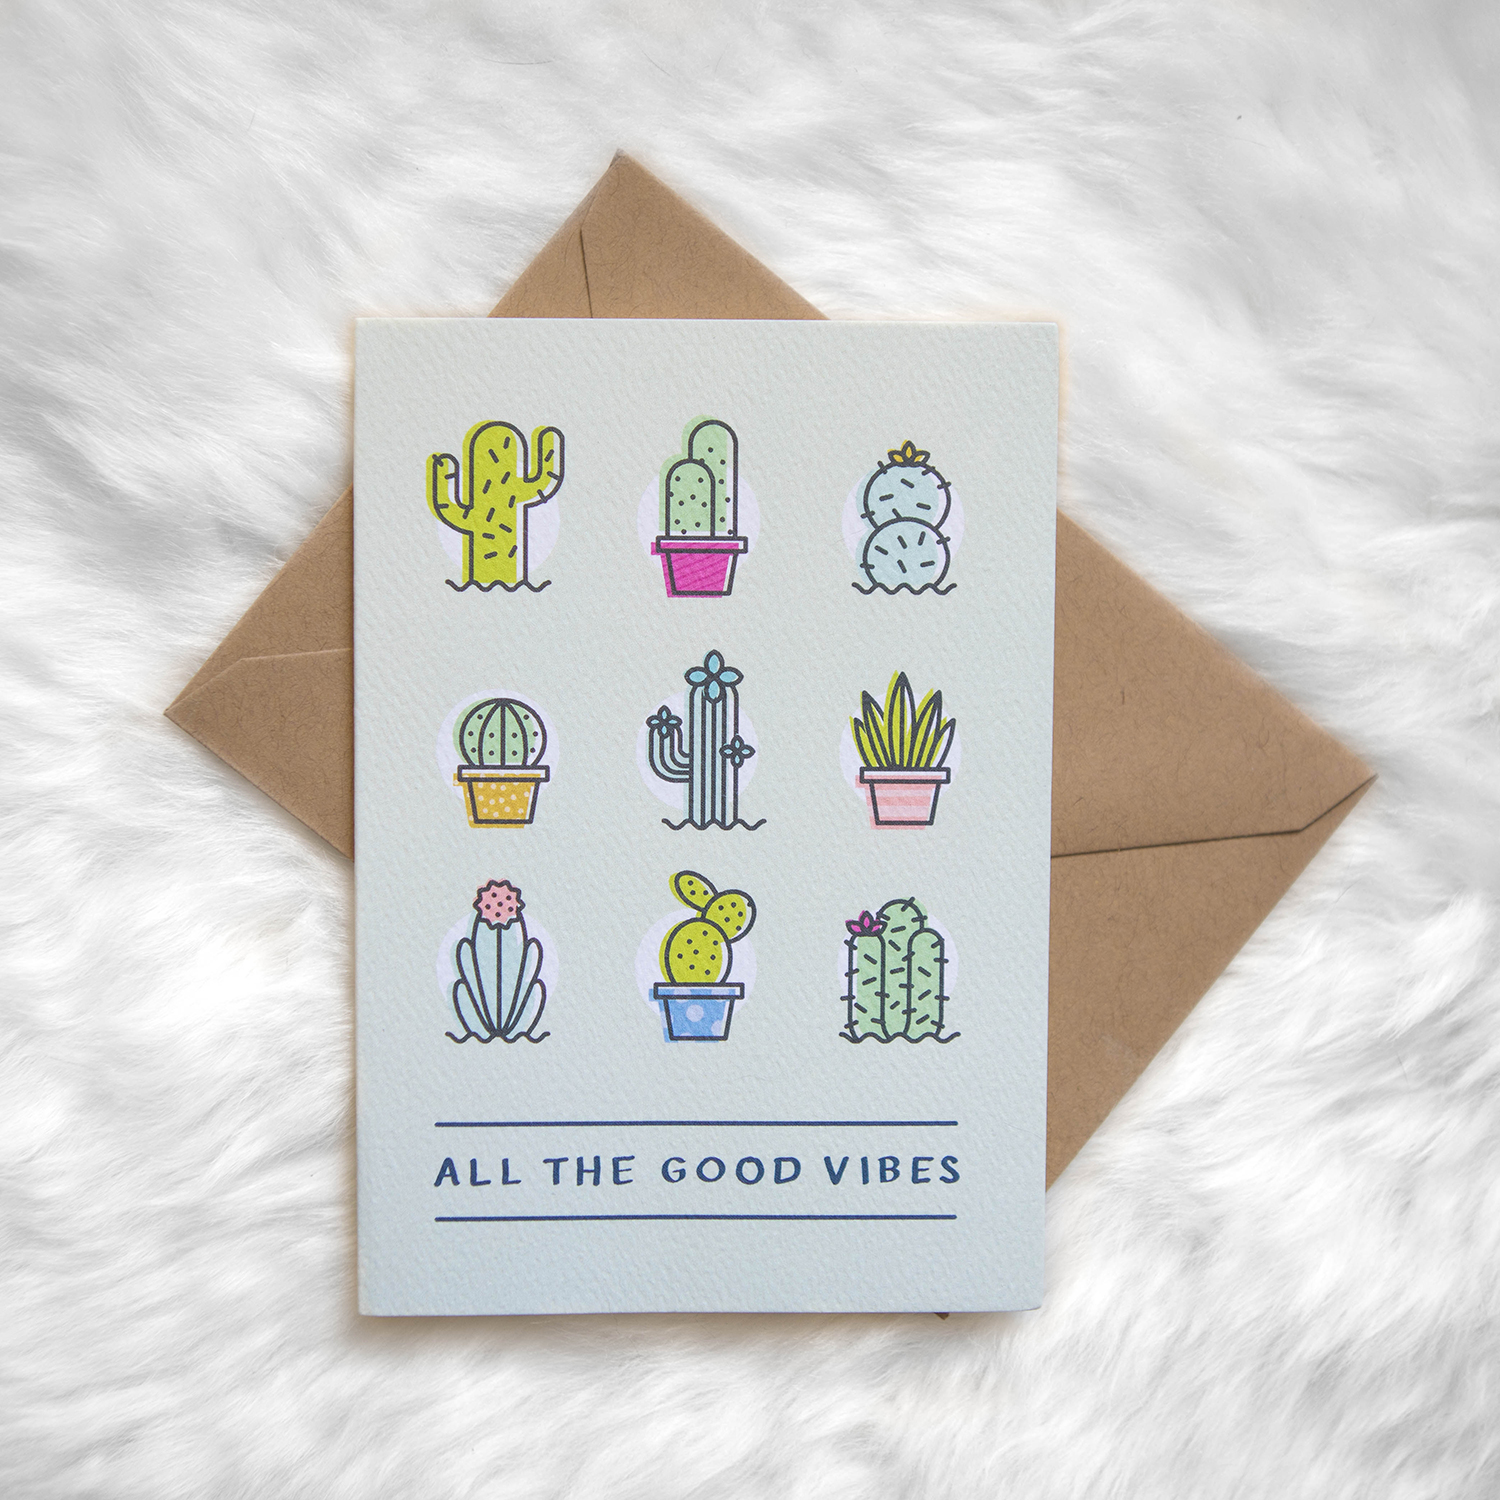 All products tiny treehouse co greeting cards art prints cactus plant lady good vibes texas greeting cards m4hsunfo